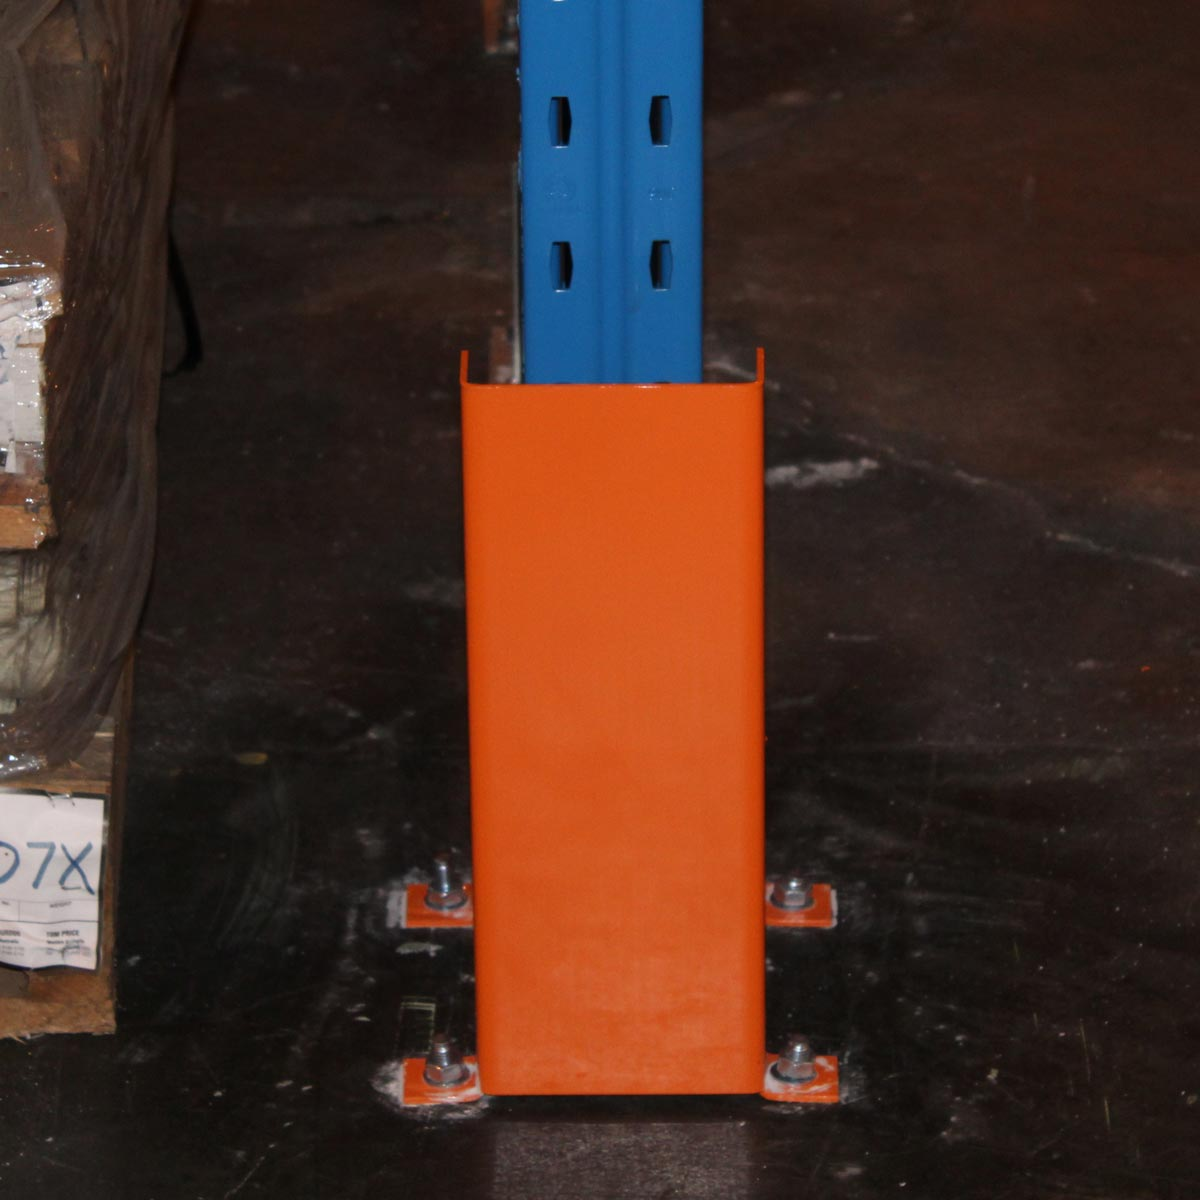 Example of 400mm post corner guard/protection in orange colour when in use.